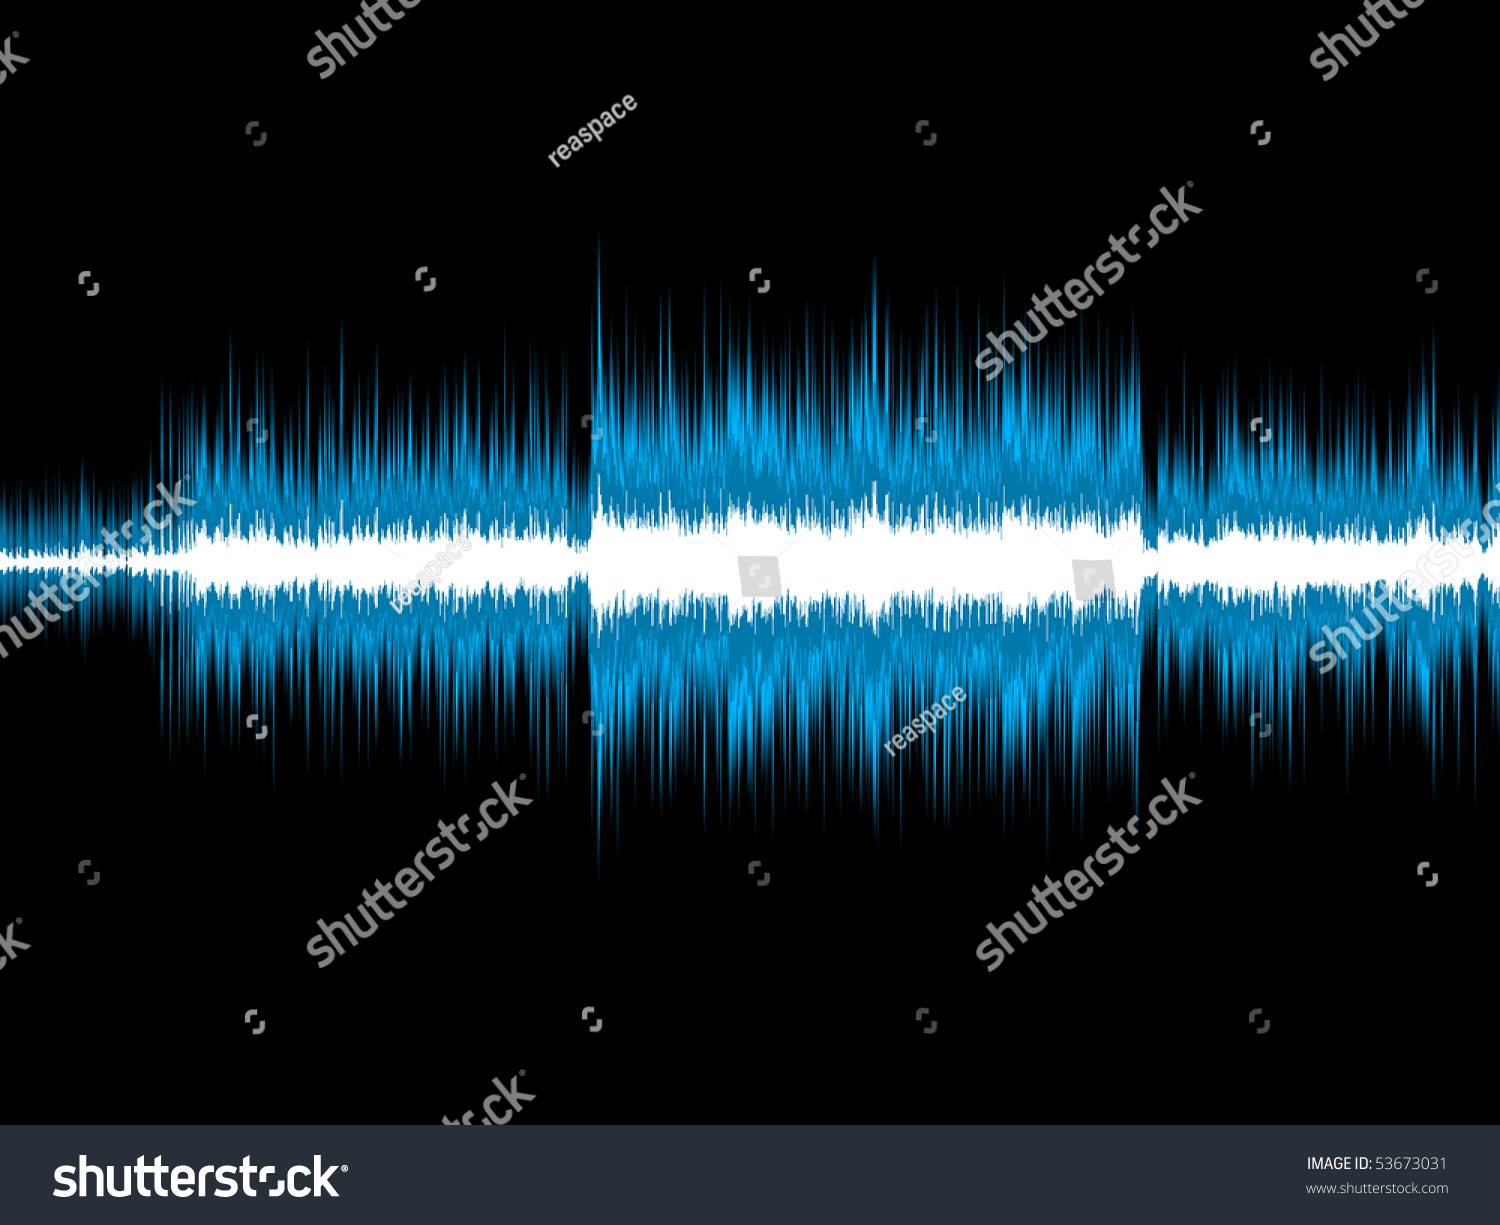 blue sound wave stock illustration 53673031 shutterstock